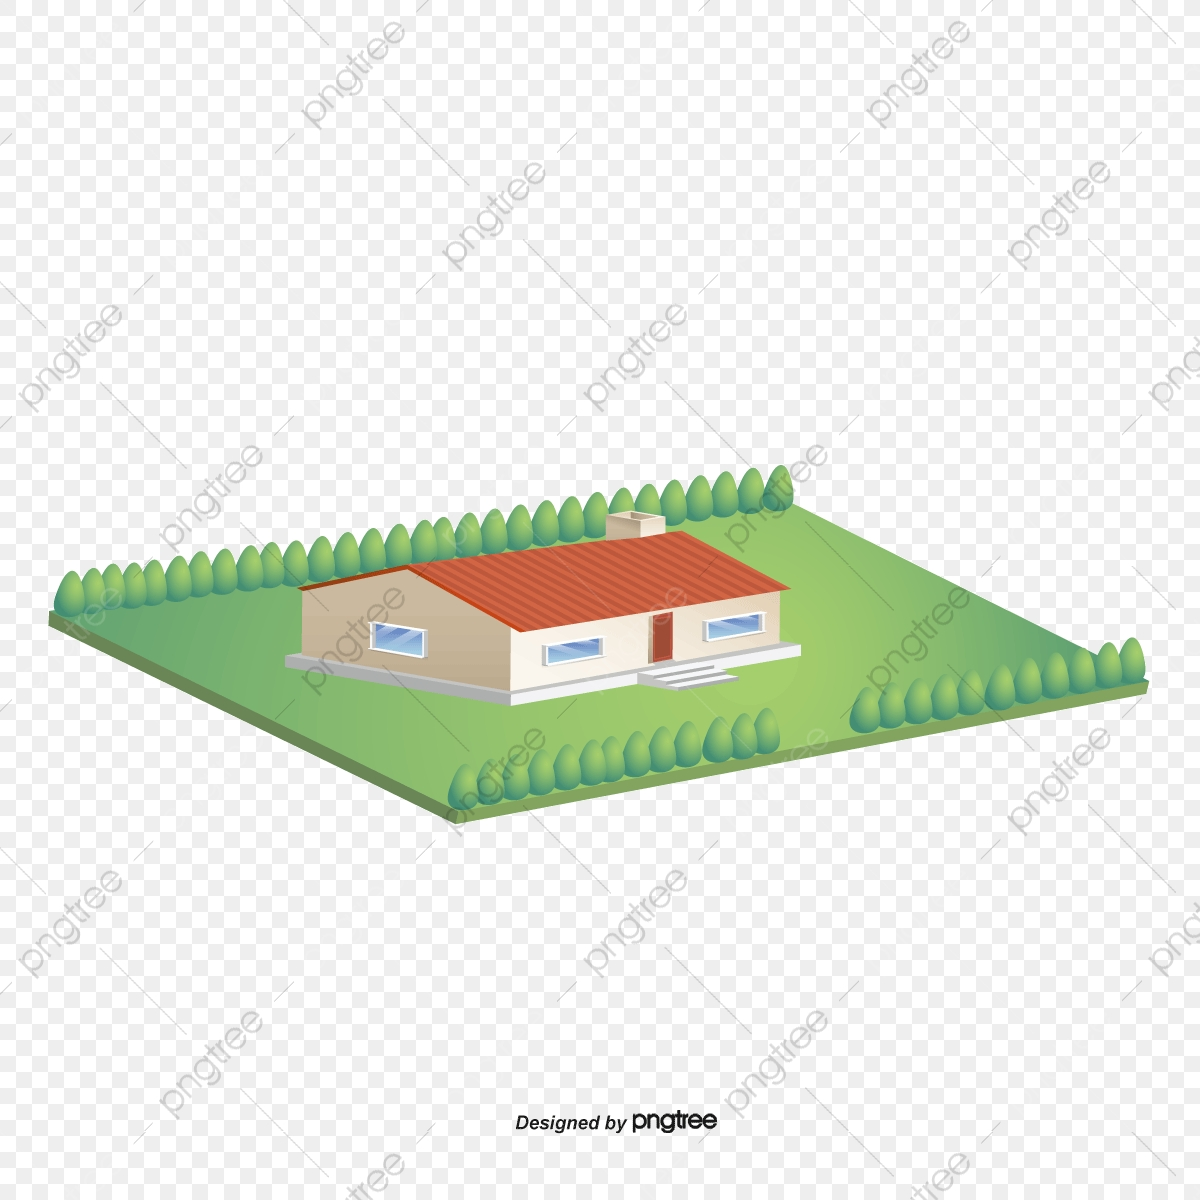 Vector Houses, 3d House, Cartoon House, House Model PNG and